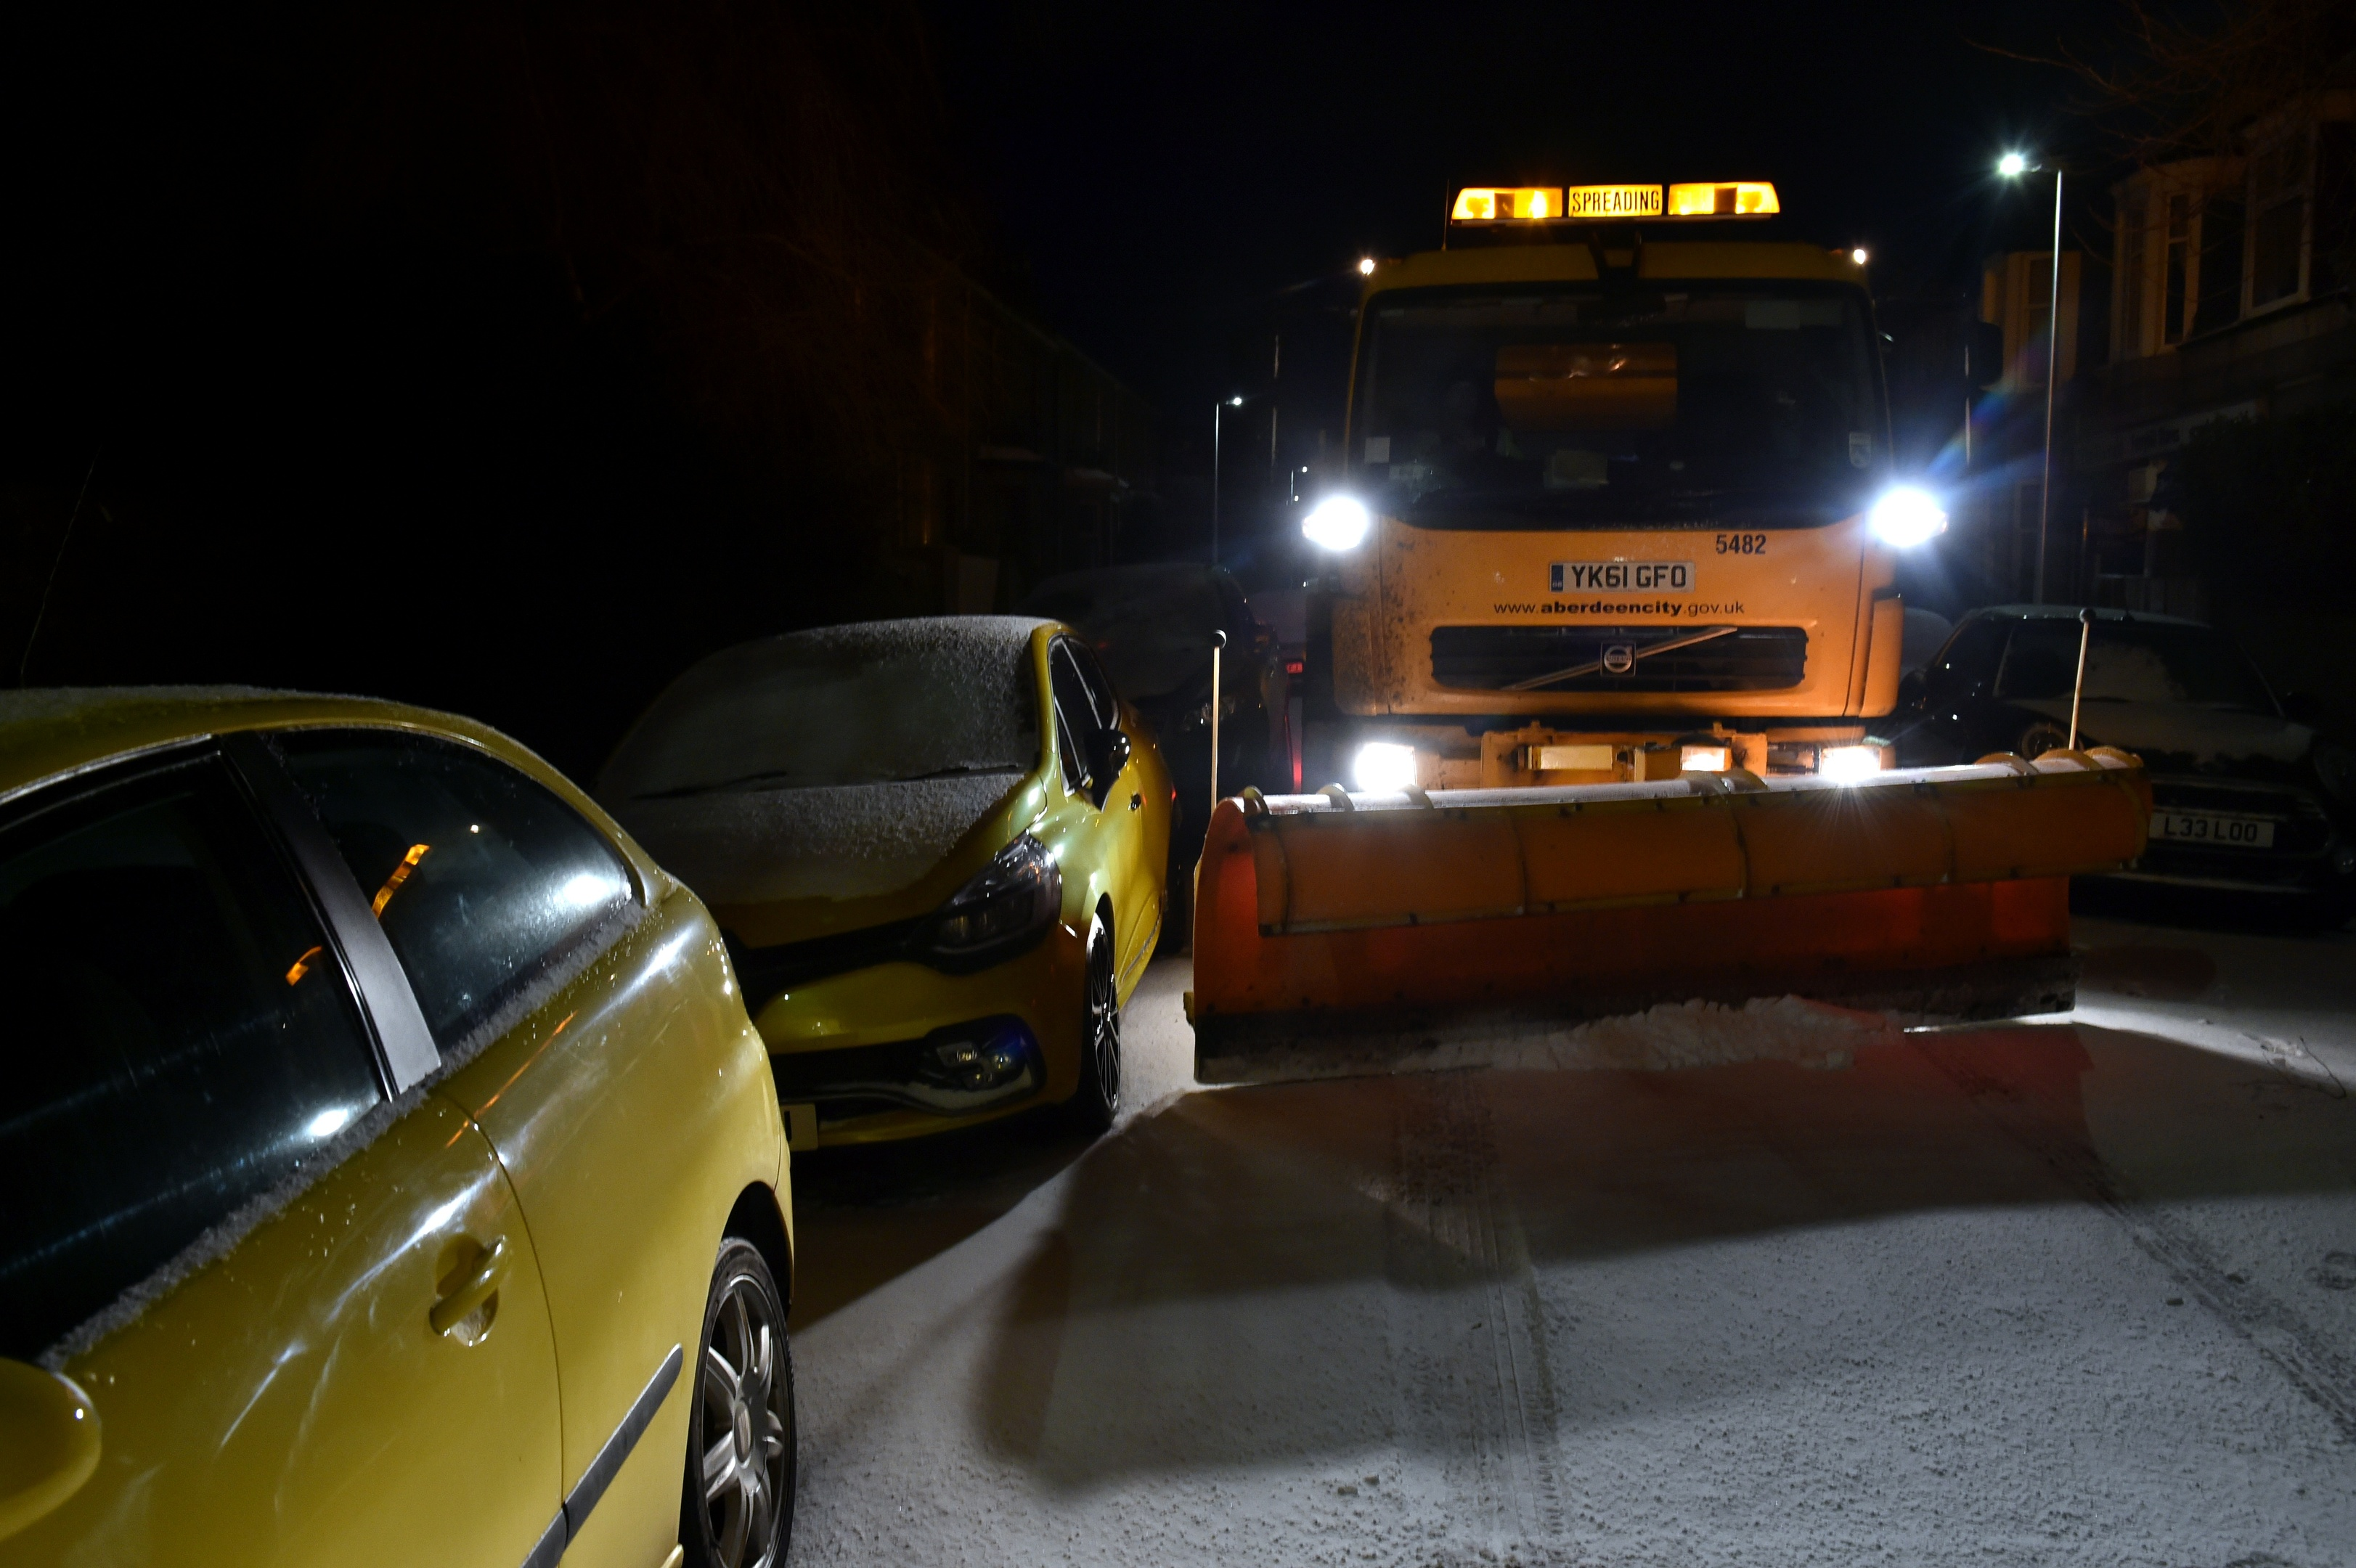 The Beast from the East snow storm arrived in Aberdeen. The gritter edges past badly parked cars.